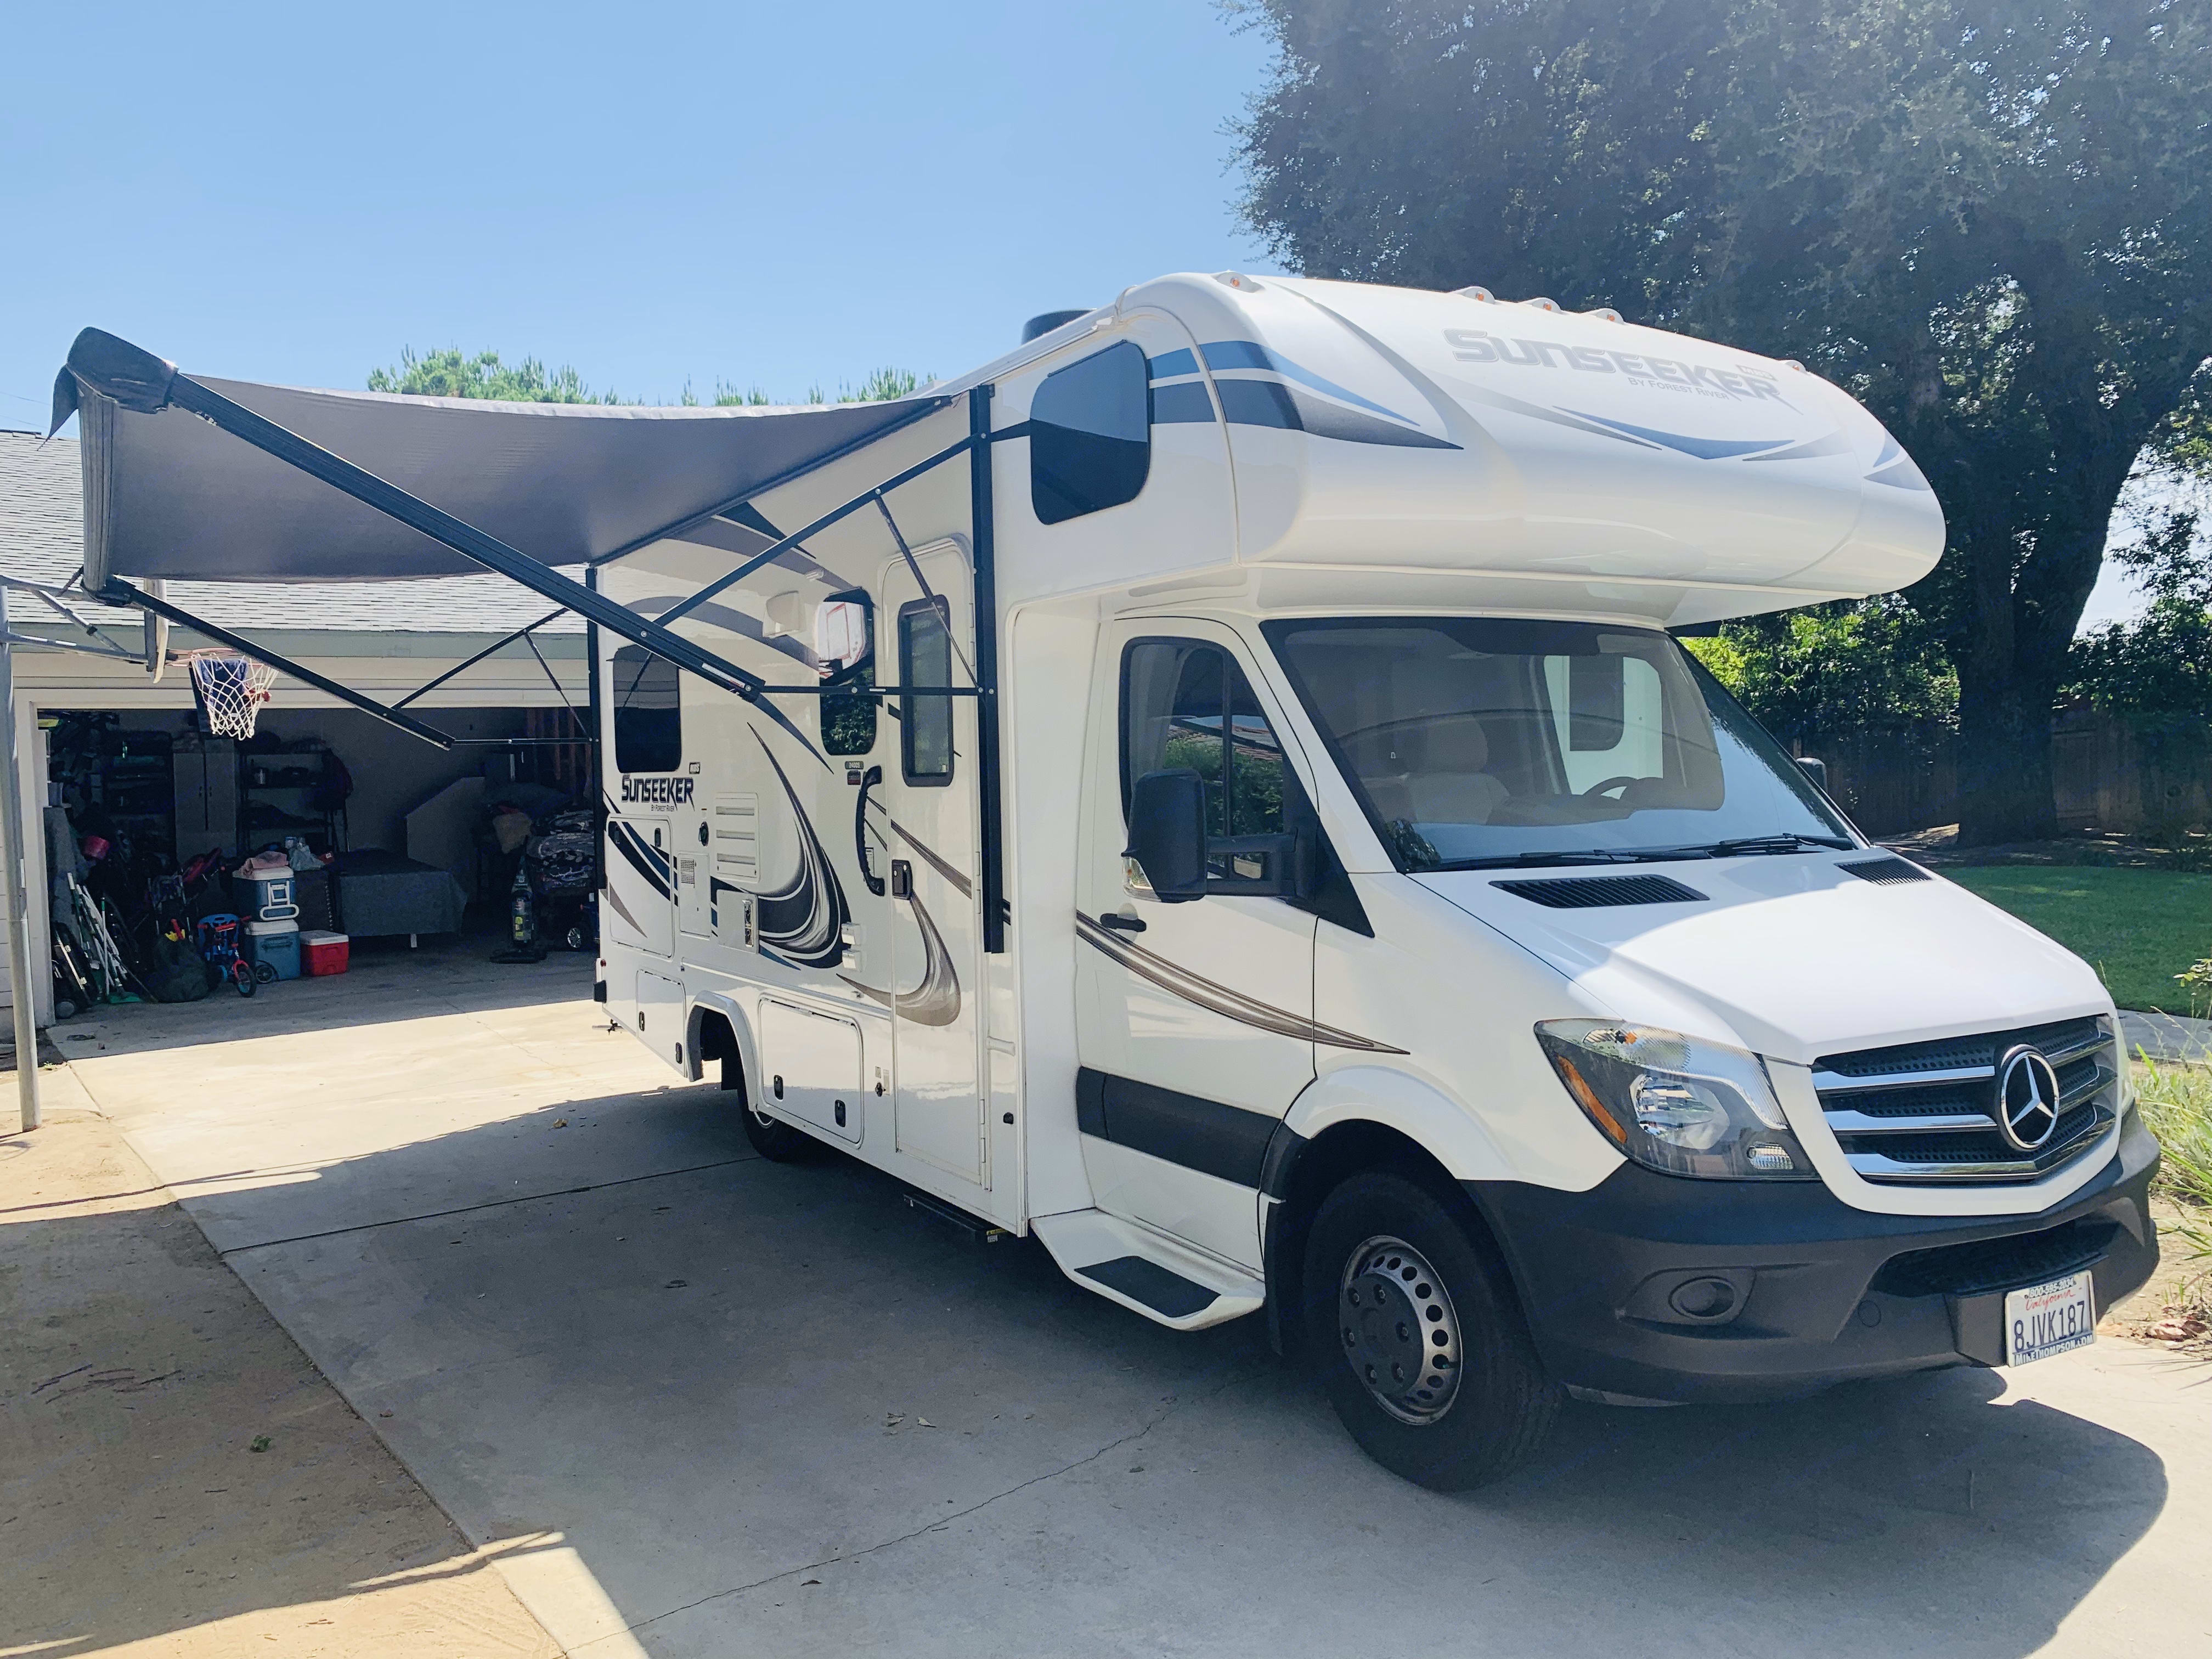 Patio awning with Solar- powered RV novelty lights and speakers, to create an extra living space when you want to experience nature fully.. Forest River Sunseeker 2019